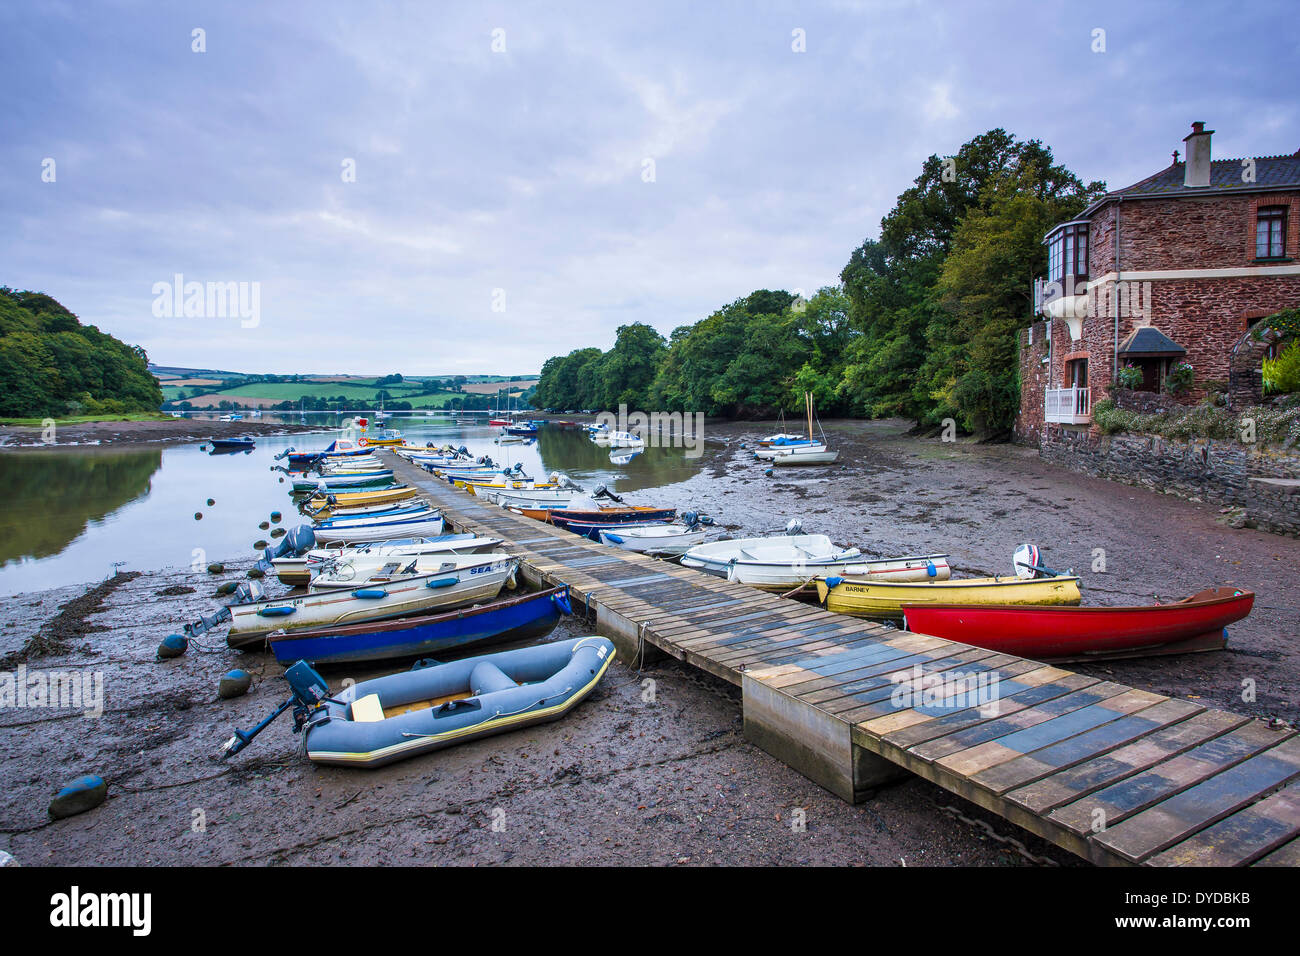 The pontoon and harbour at Stoke Gabriel on the river Dart. - Stock Image